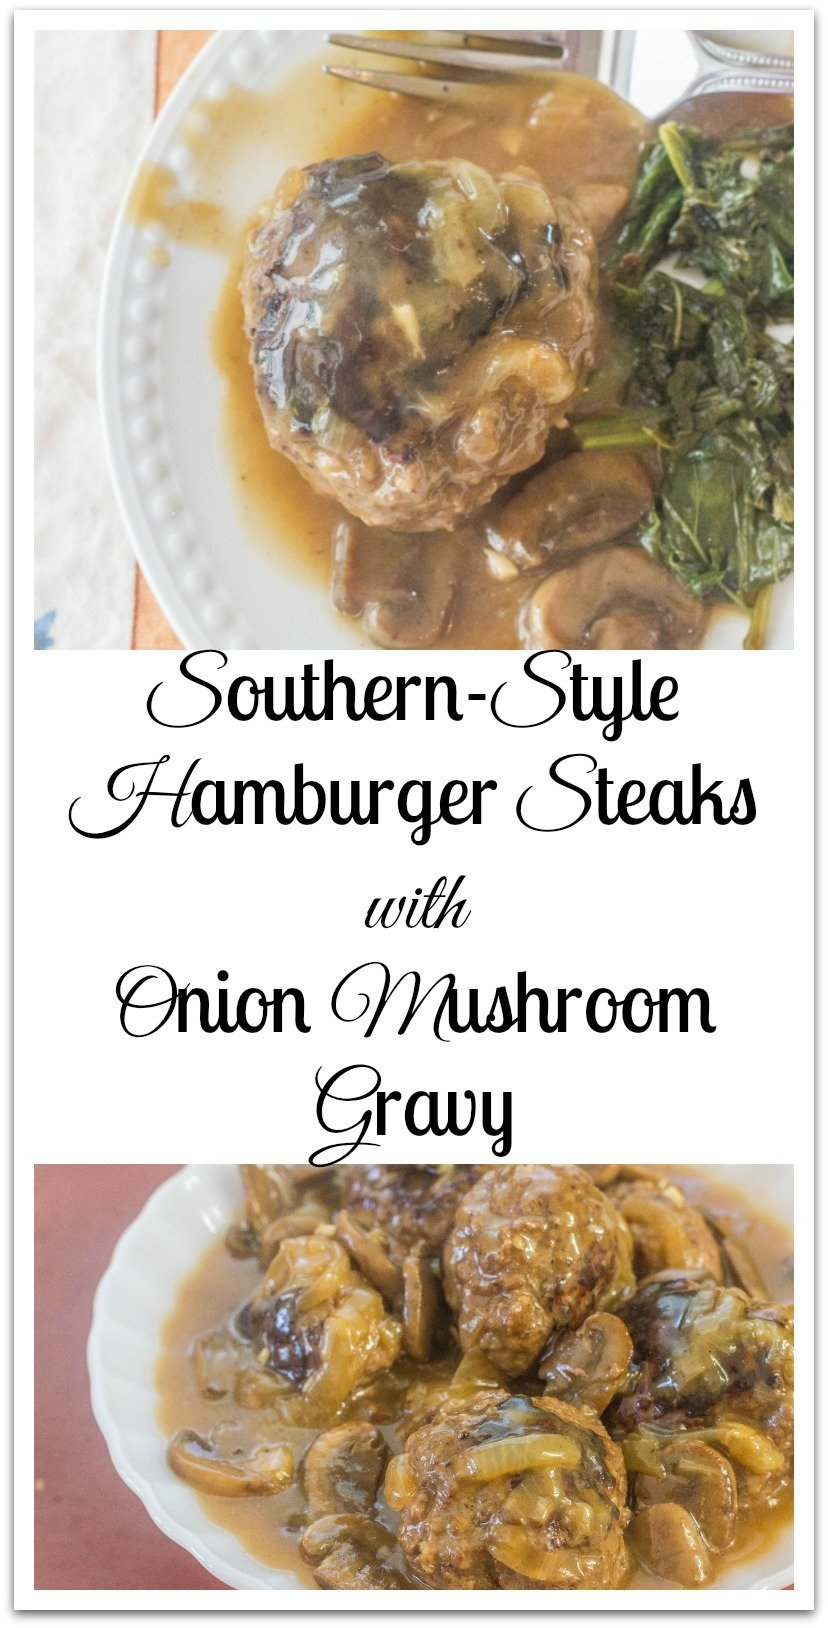 Southern-Style Hamburger Steaks with Onion Mushroom Gravy. 3 ingredients hamburger steaks cooked in a flavorful onion mushroom gravy. #HamburgerSteaks #OnionMushroomGravy